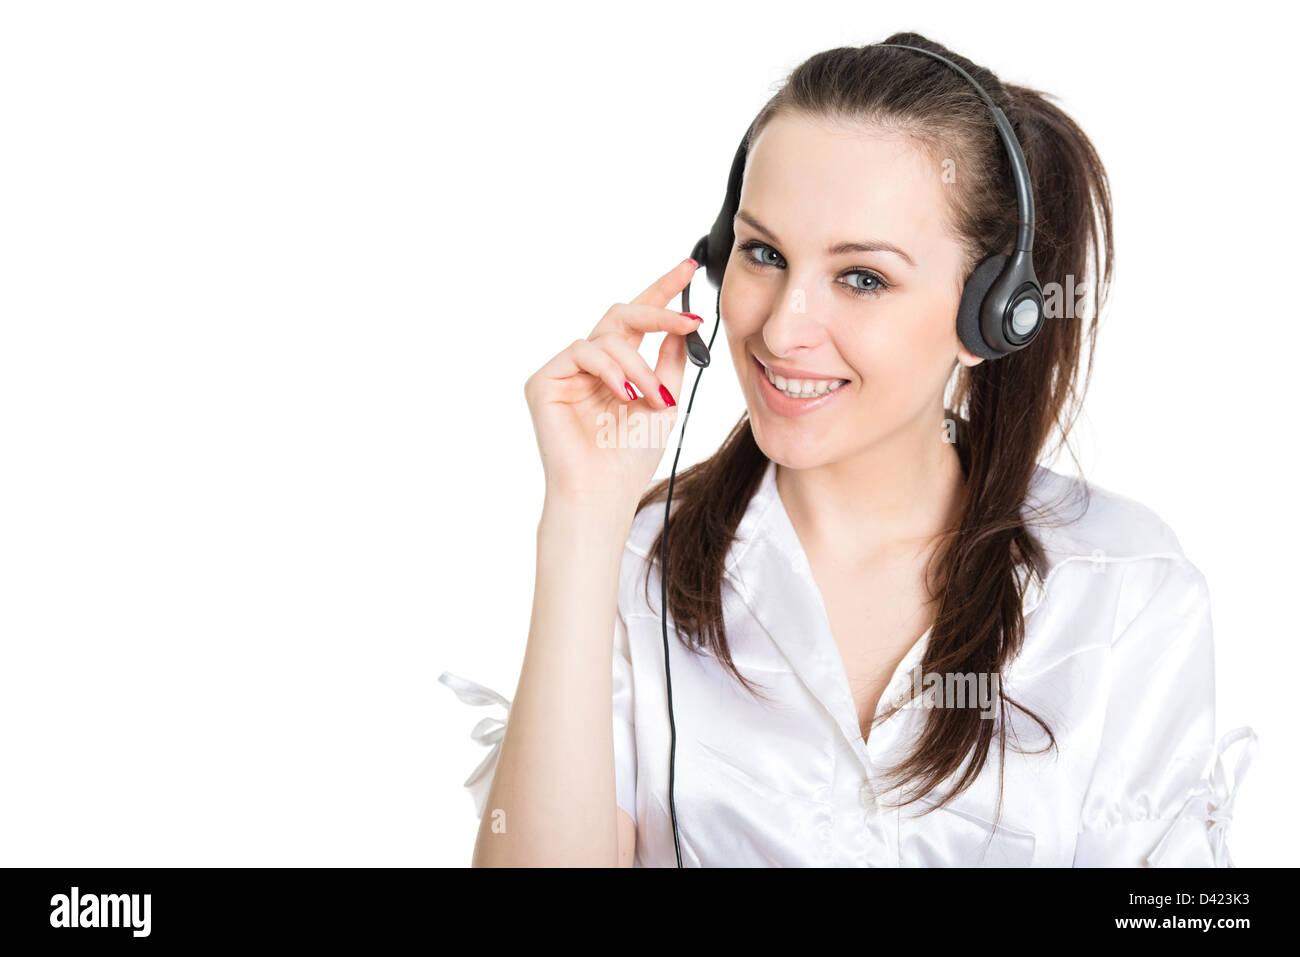 Portrait of happy smiling phone operator with headset, isolated on white background Stock Photo